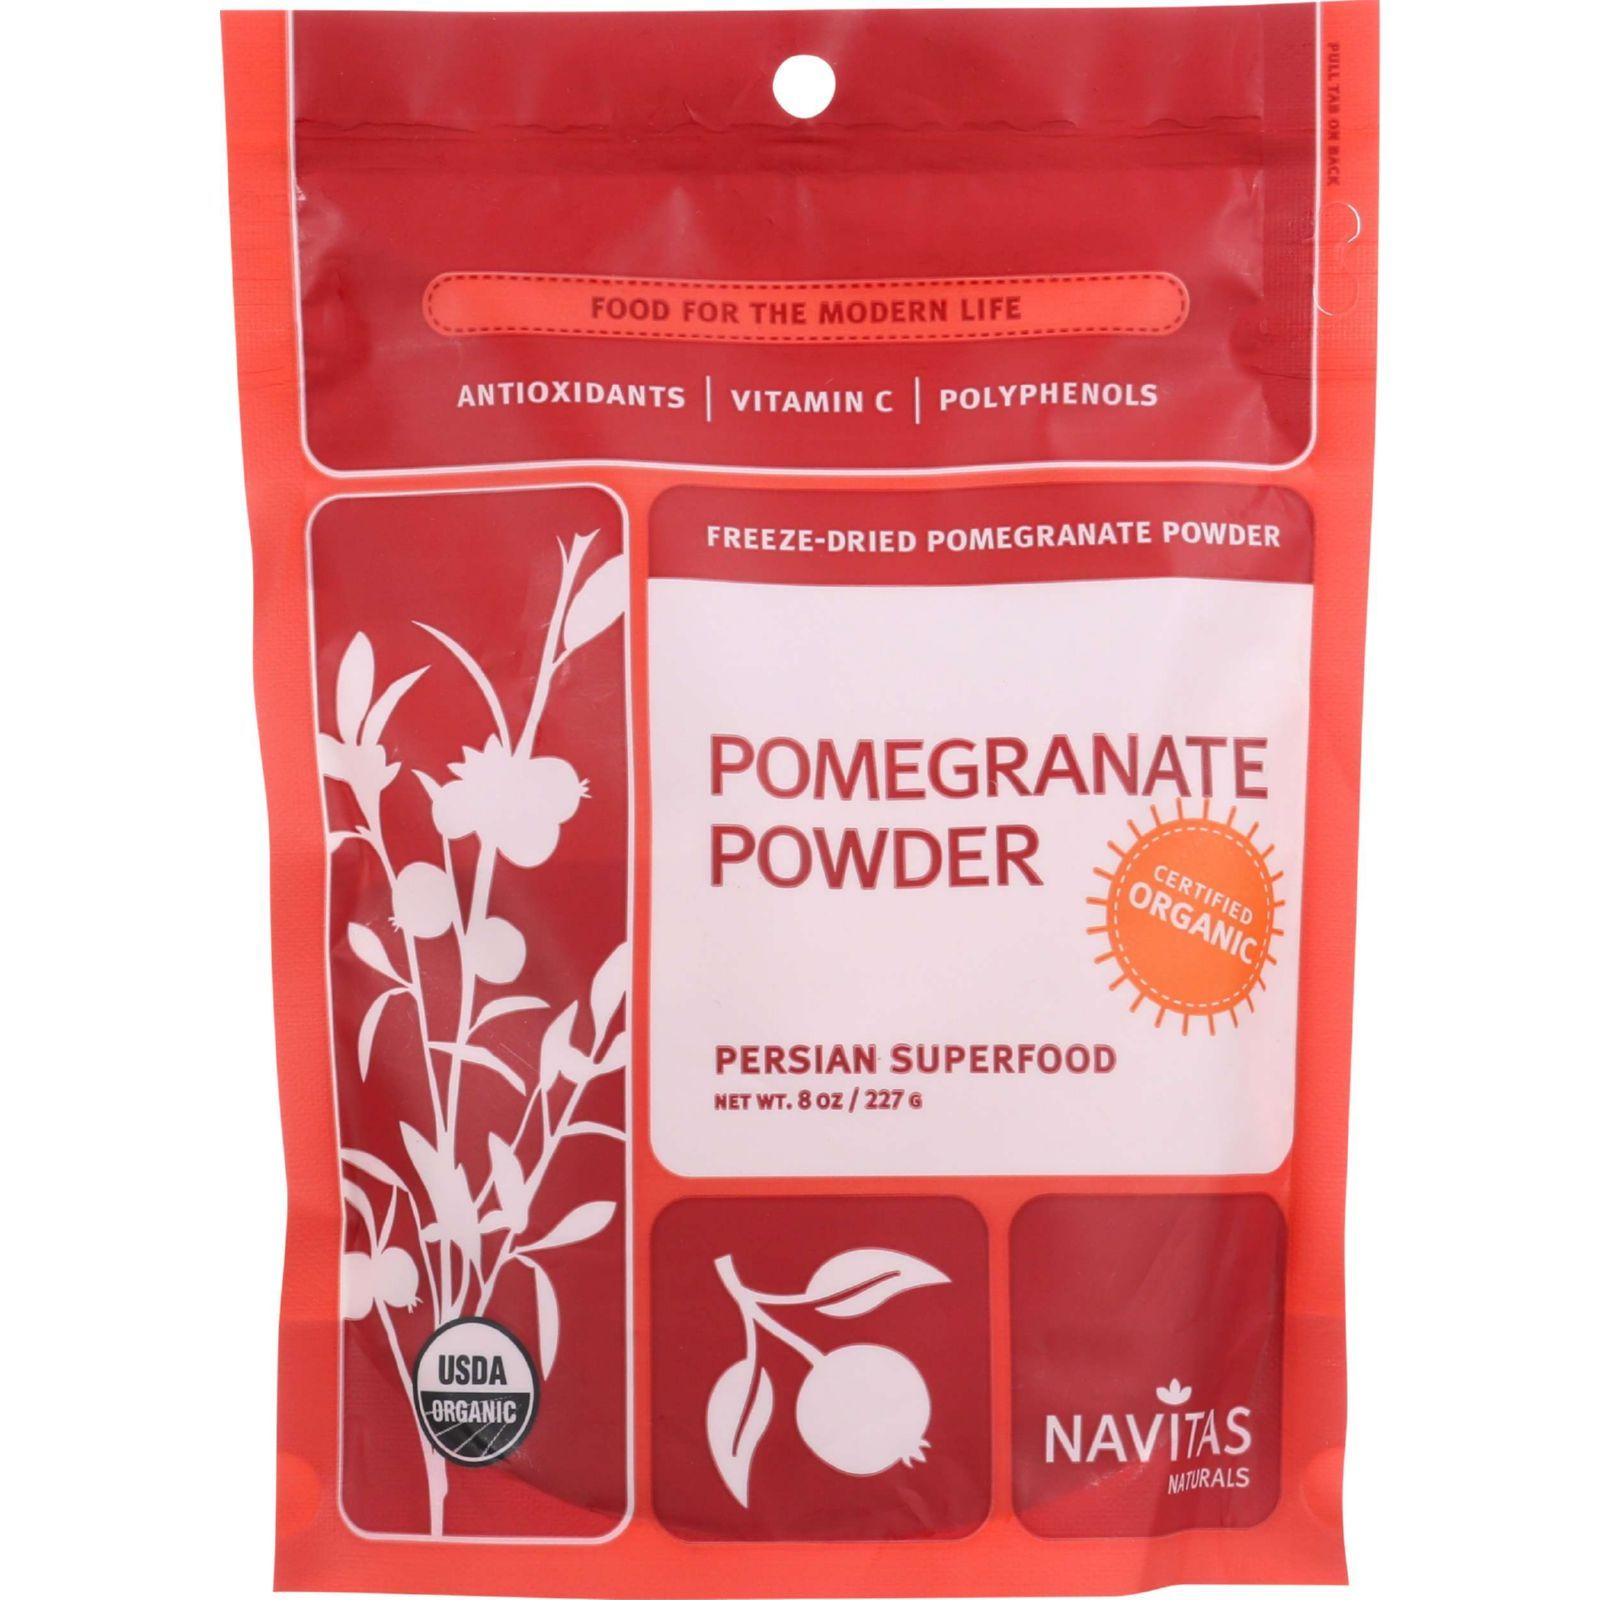 Navitas Naturals Pomegranate Powder - Organic - Freeze-Dried - 8 oz - case of 6